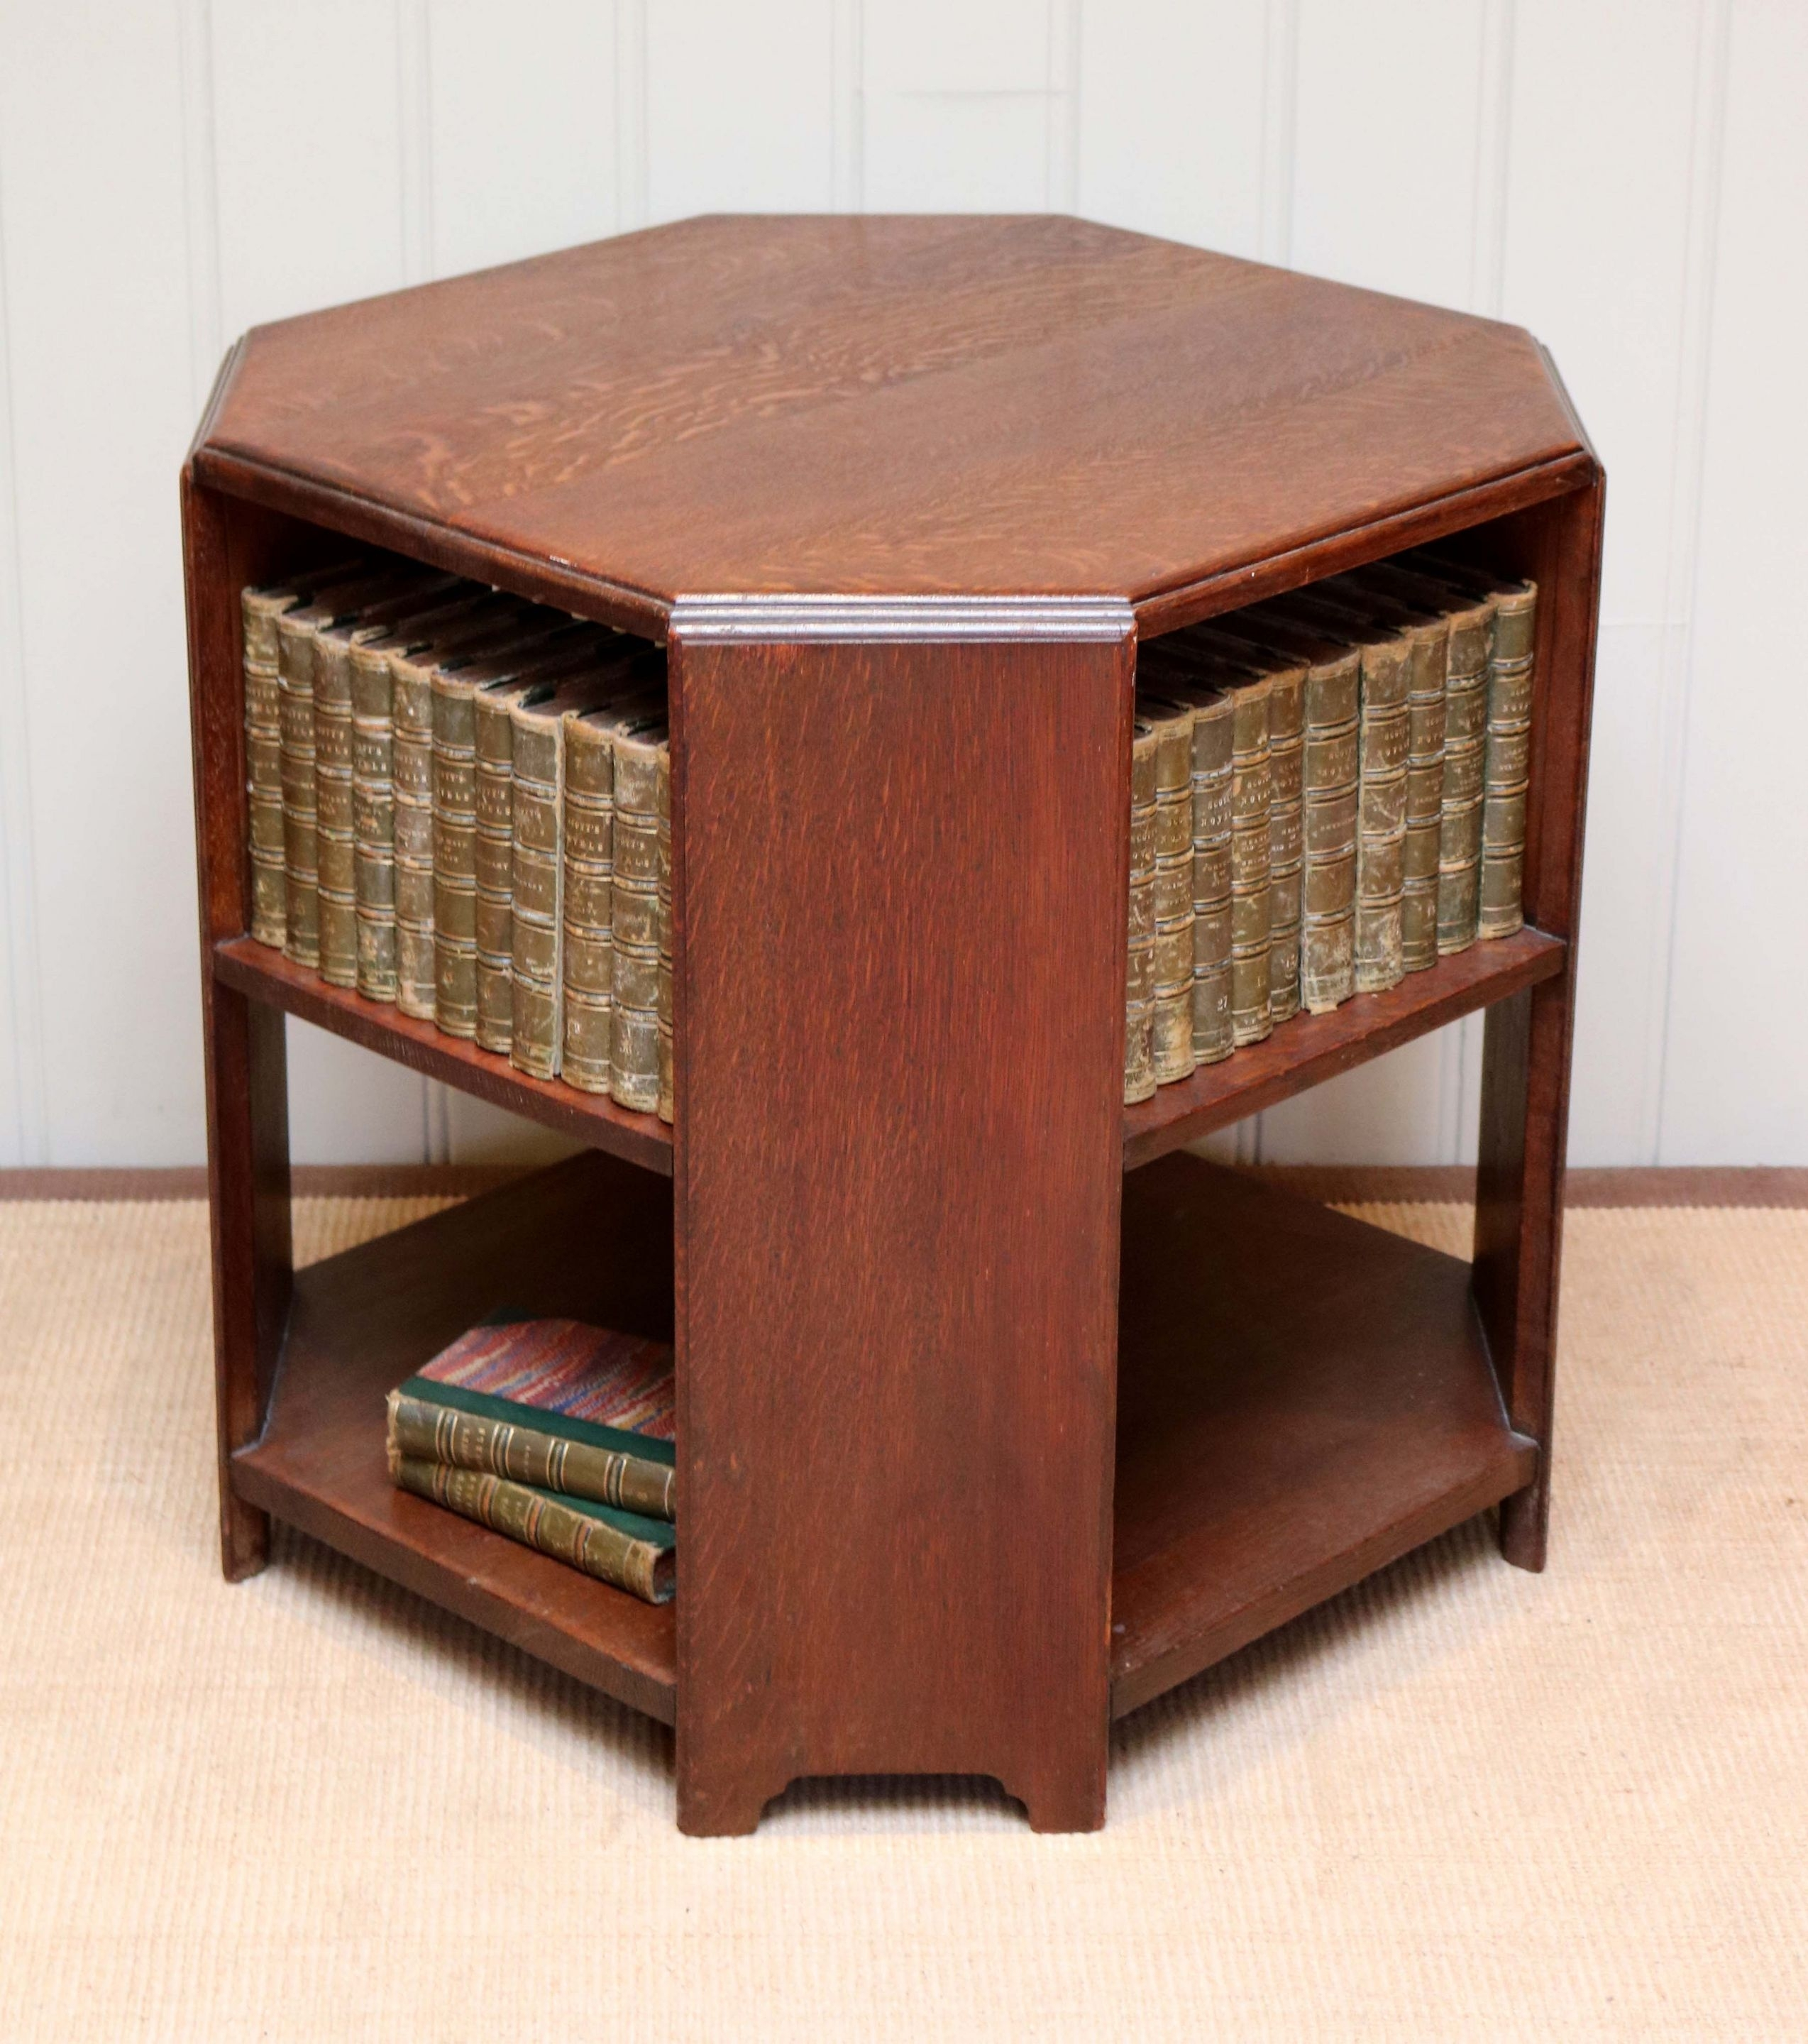 Heals Art Deco Octagonal Coffee Table (C. 1930 English) From Worboys within Antiqued Art Deco Coffee Tables (Image 27 of 30)